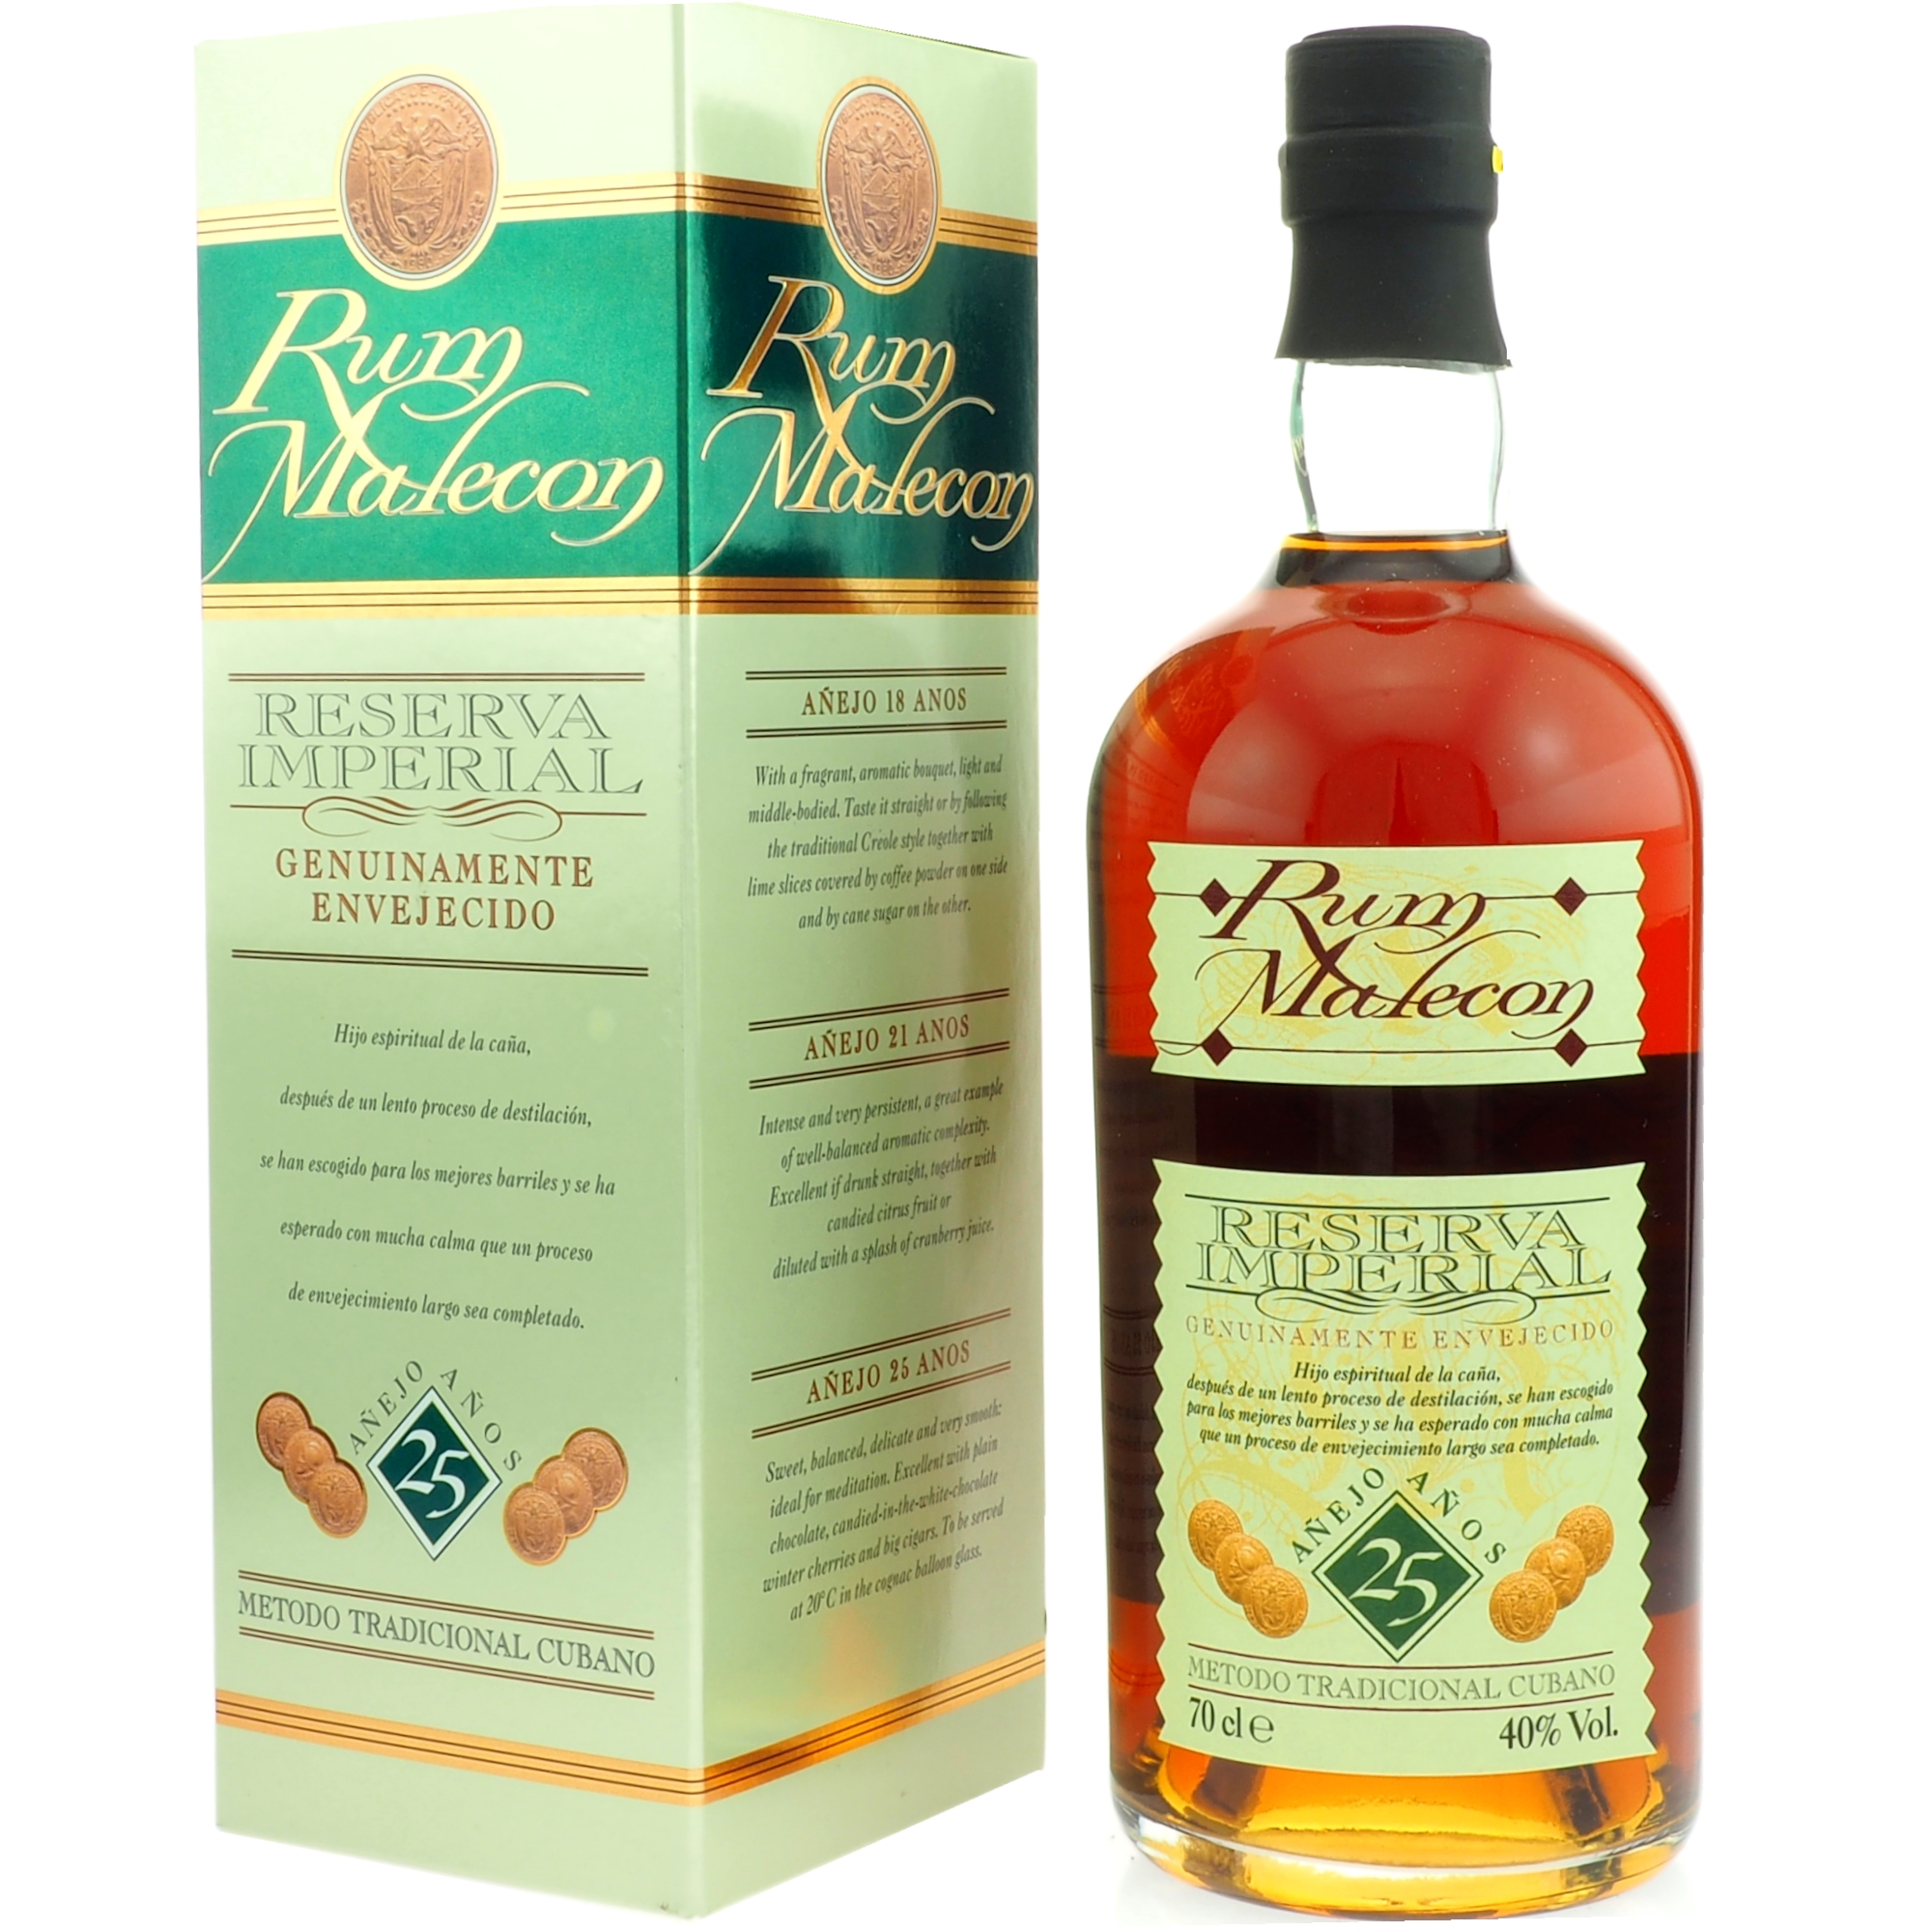 Rum-Malecon-Reserva-Imperial-Anejo-25-Anos-mB